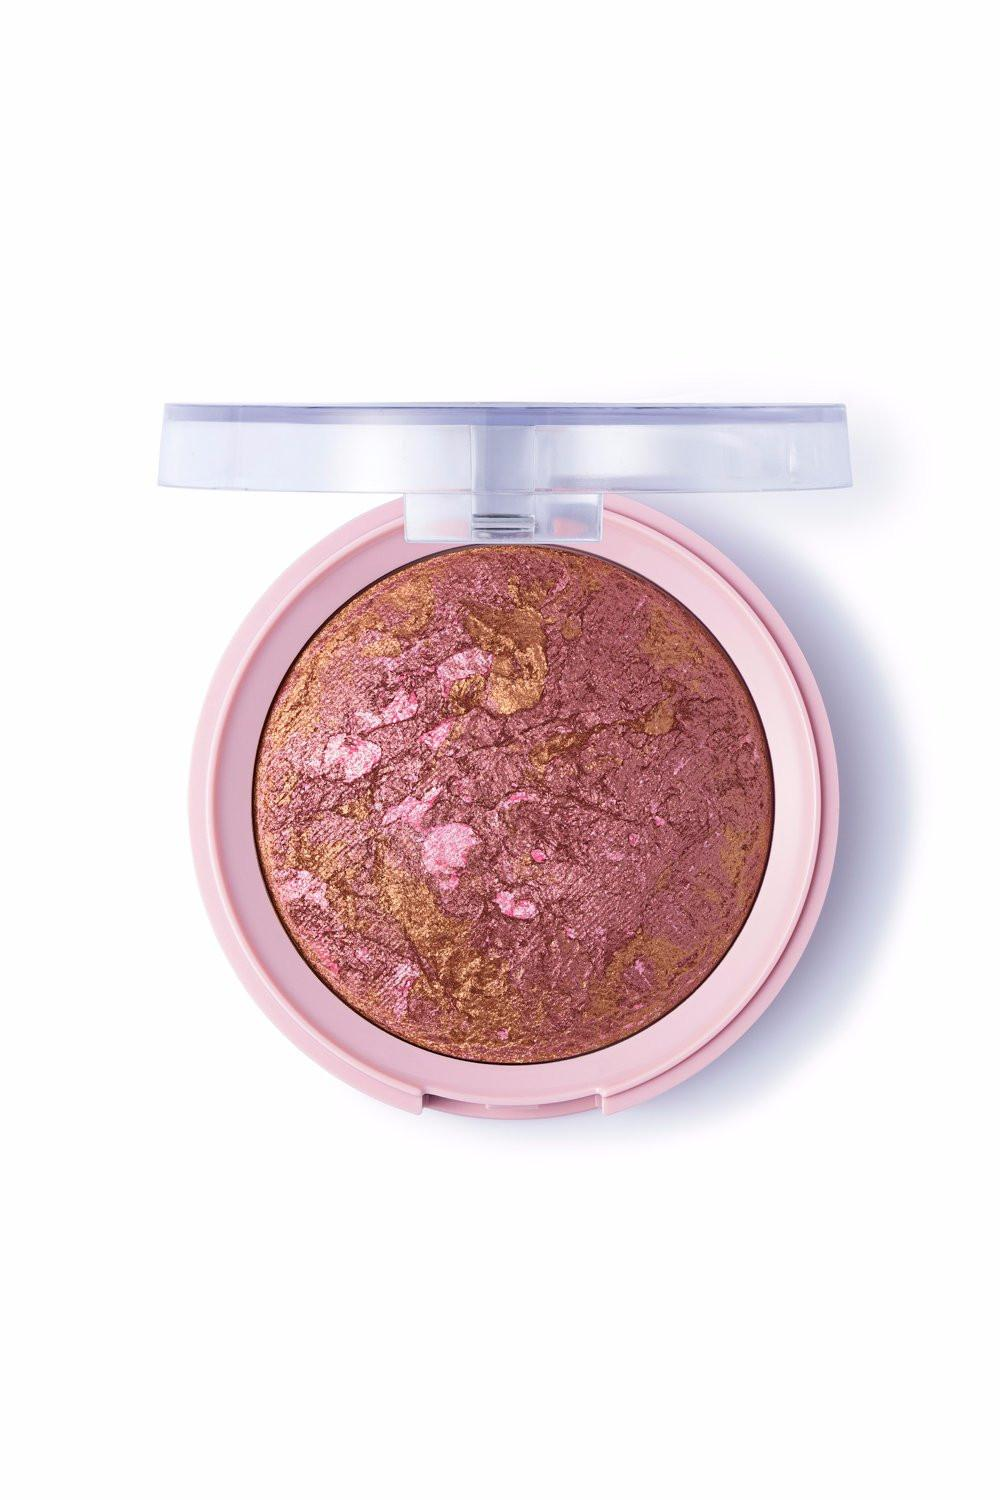 Pretty by flormar Baked Blush Rosy Bronze 005